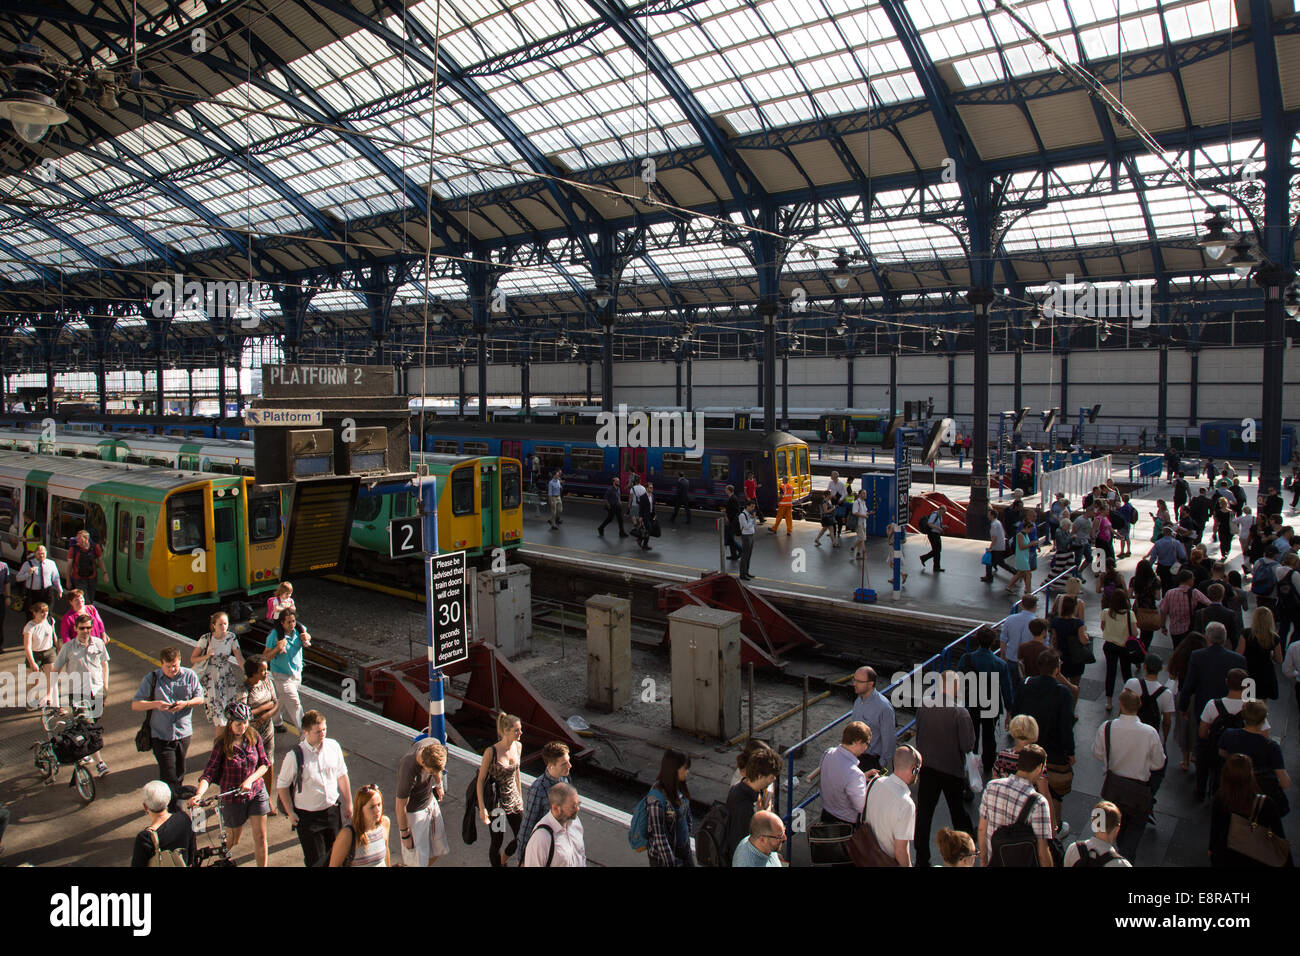 Passengers getting off trains and walking towards ticket gates at Brighton Train Station during a busy summer morning. - Stock Image